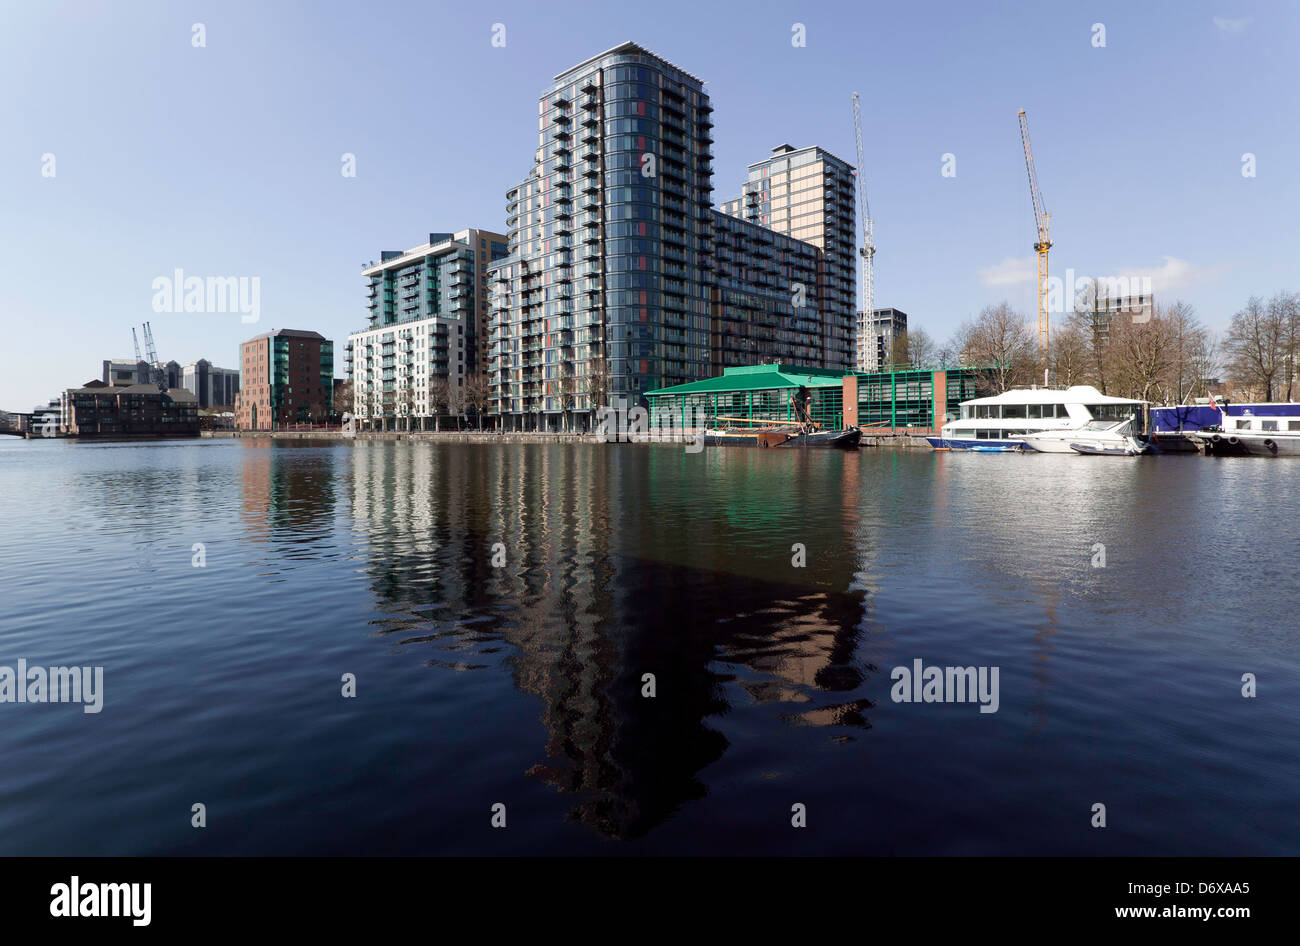 Ability Place, Millwall Inner Dock, Millwall, Isle of Dogs, London. - Stock Image